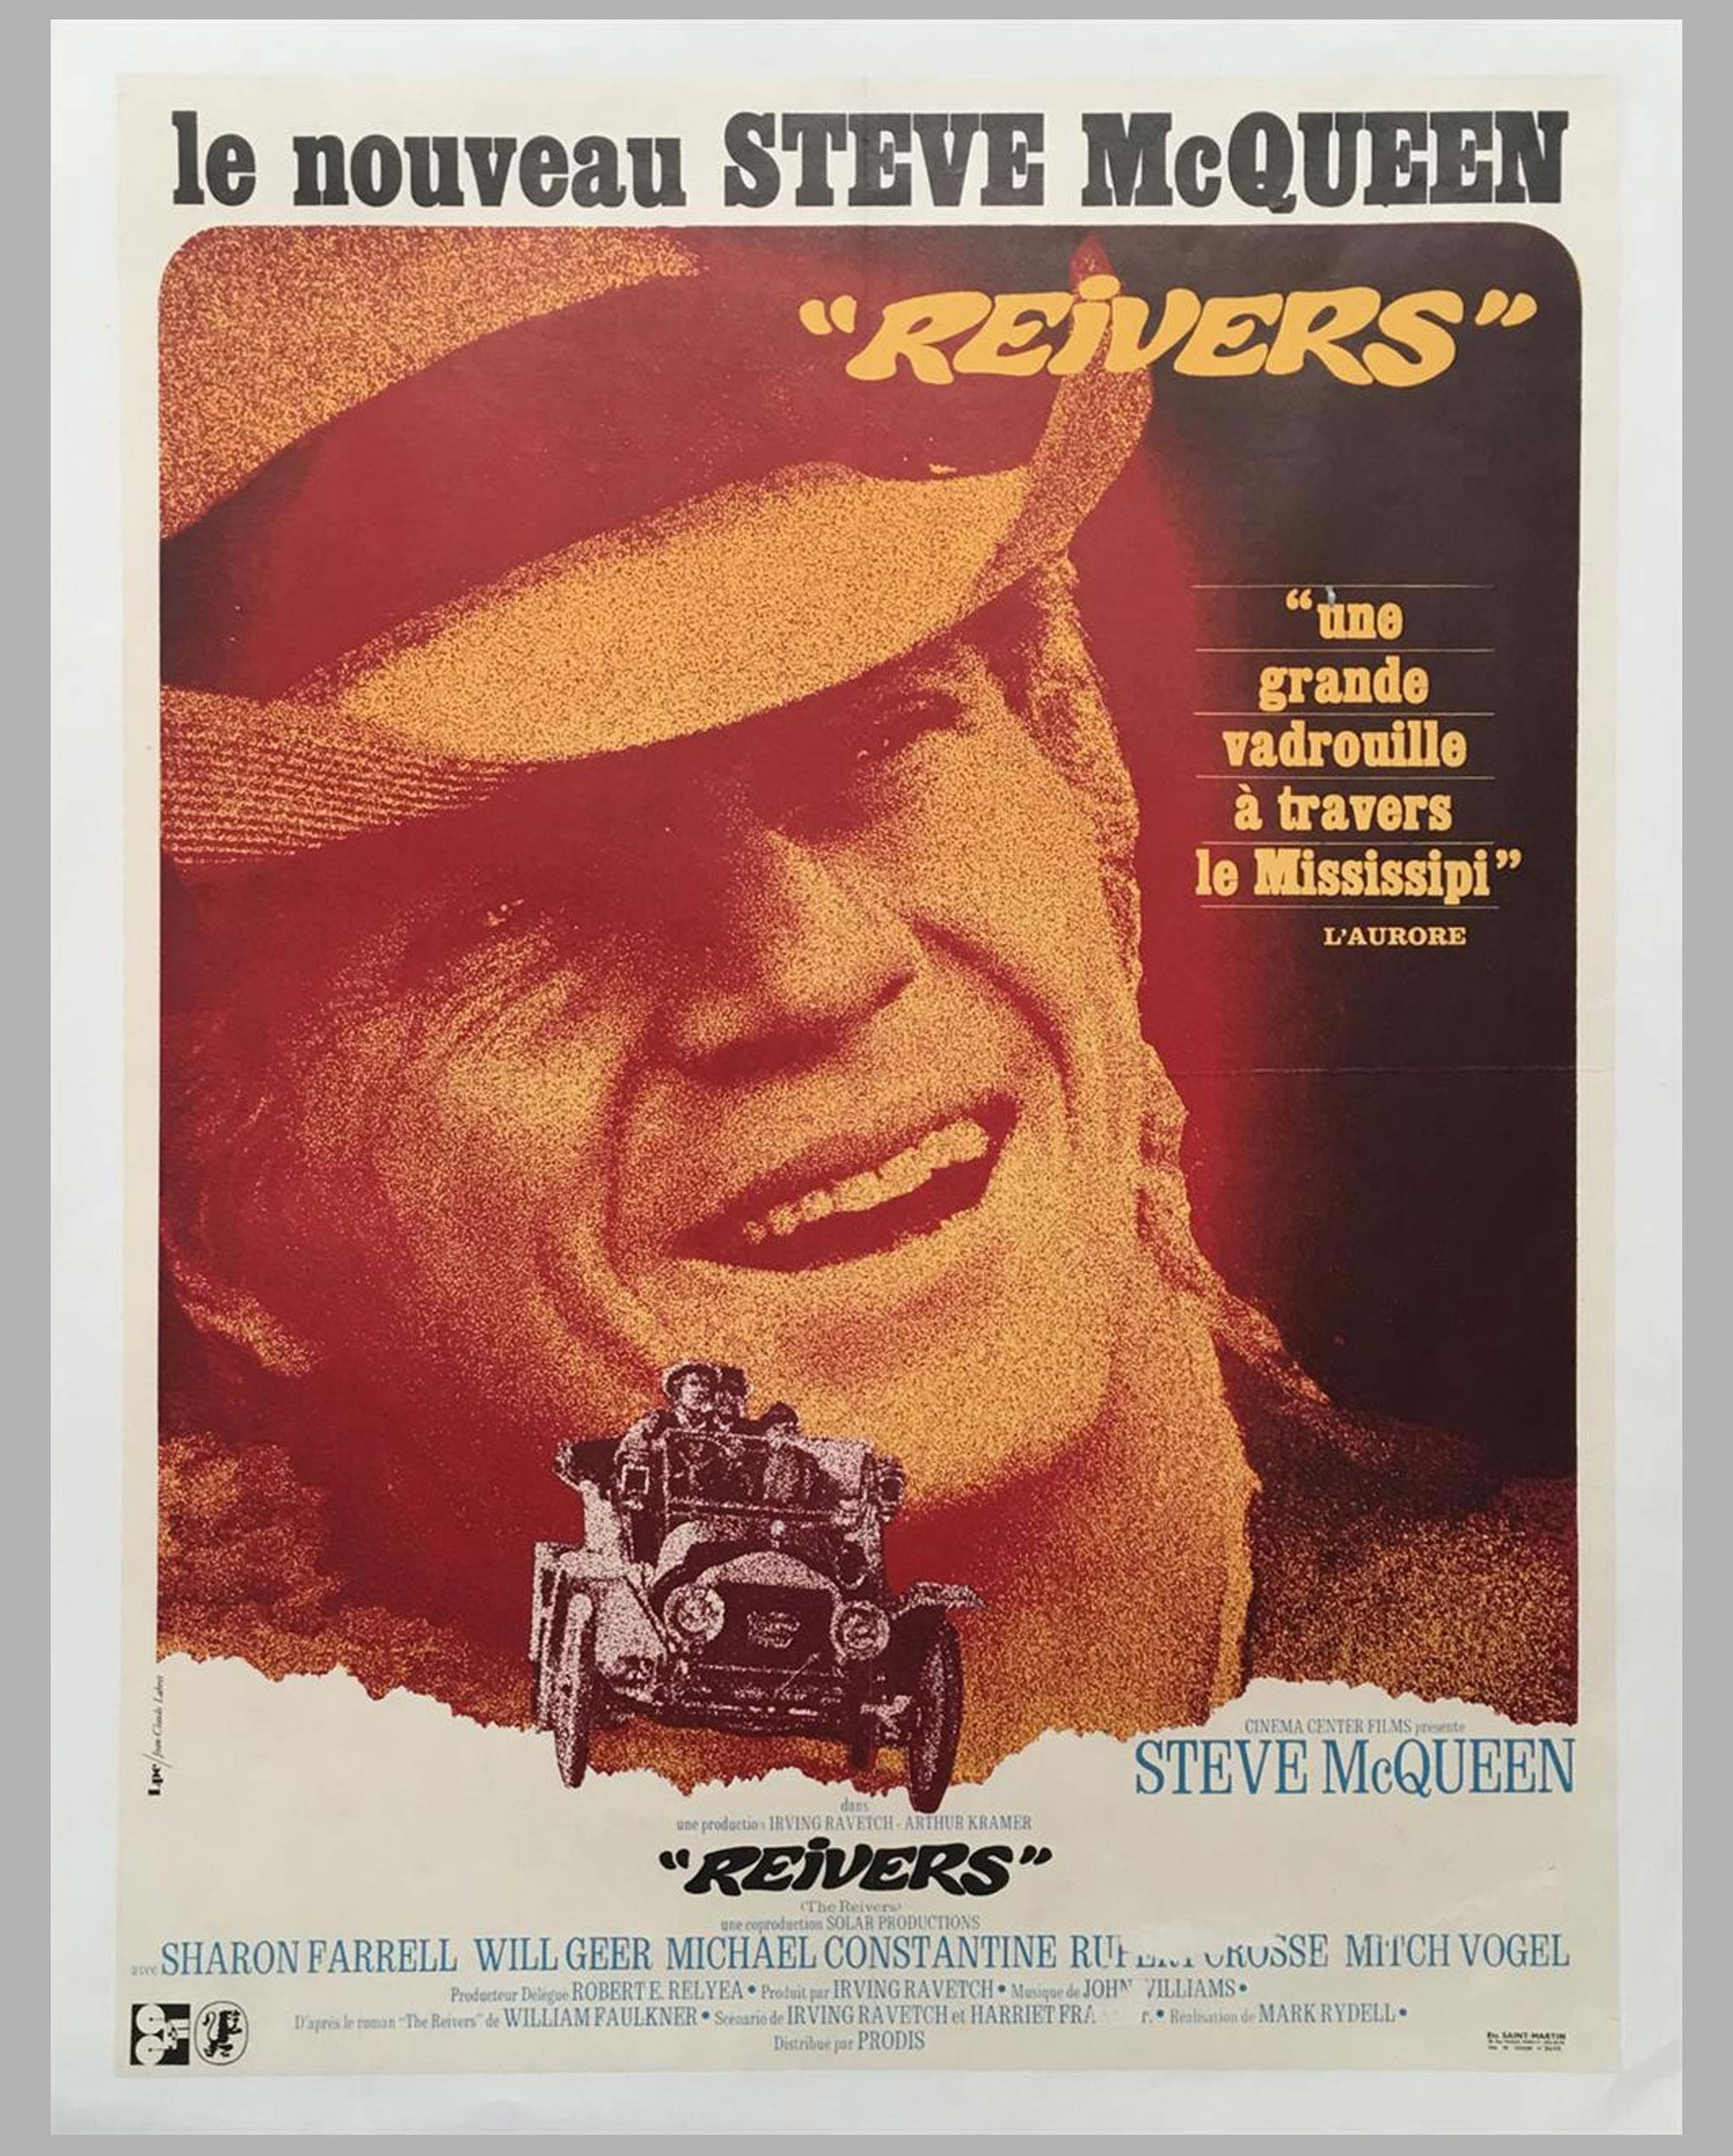 1969 Reivers original movie poster, French edition, with Steve McQueen